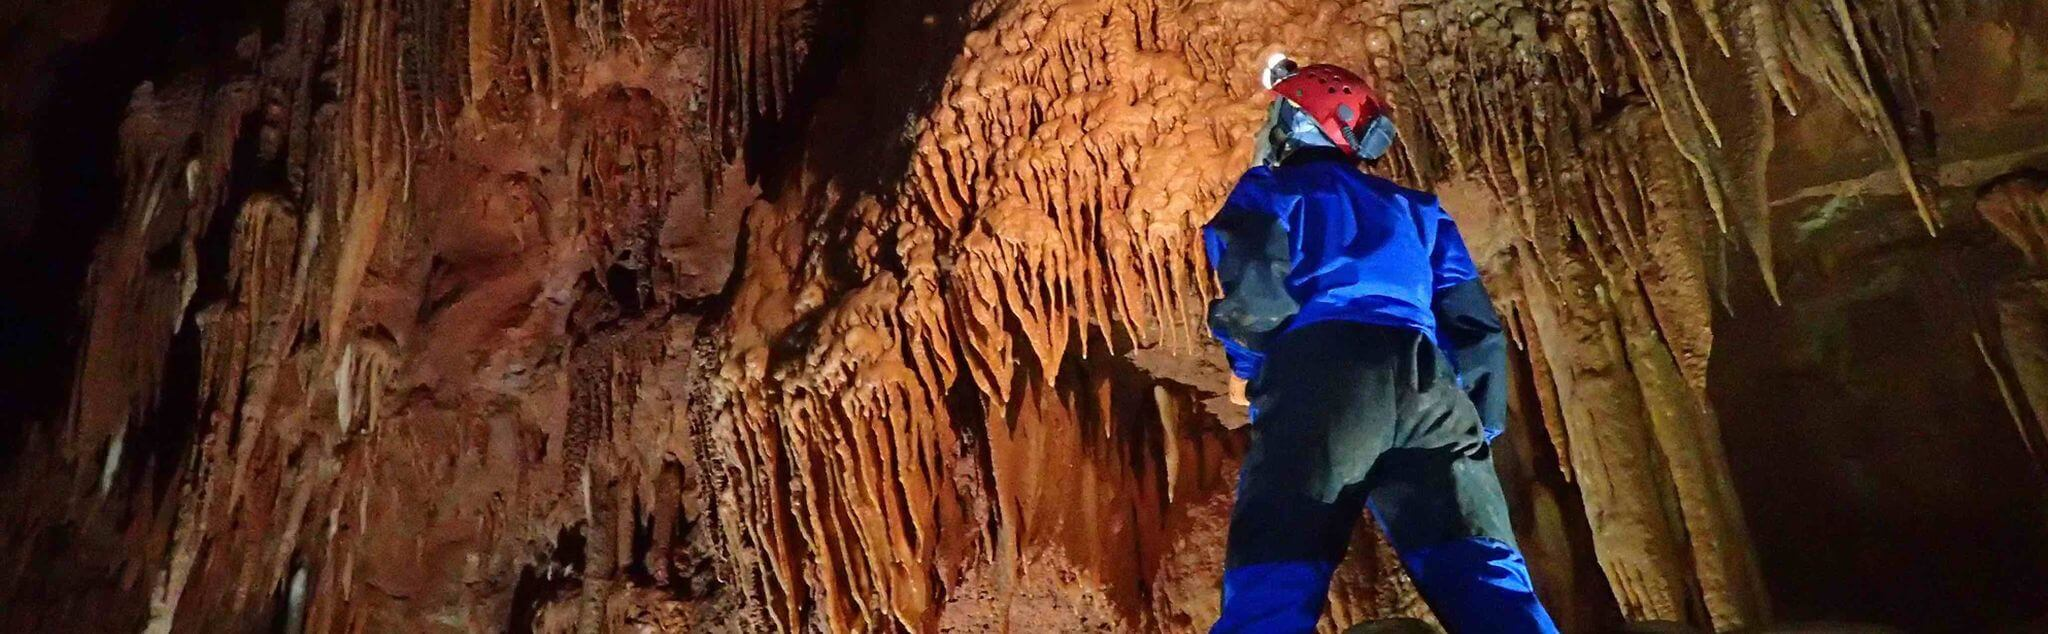 Caving in West Midlands